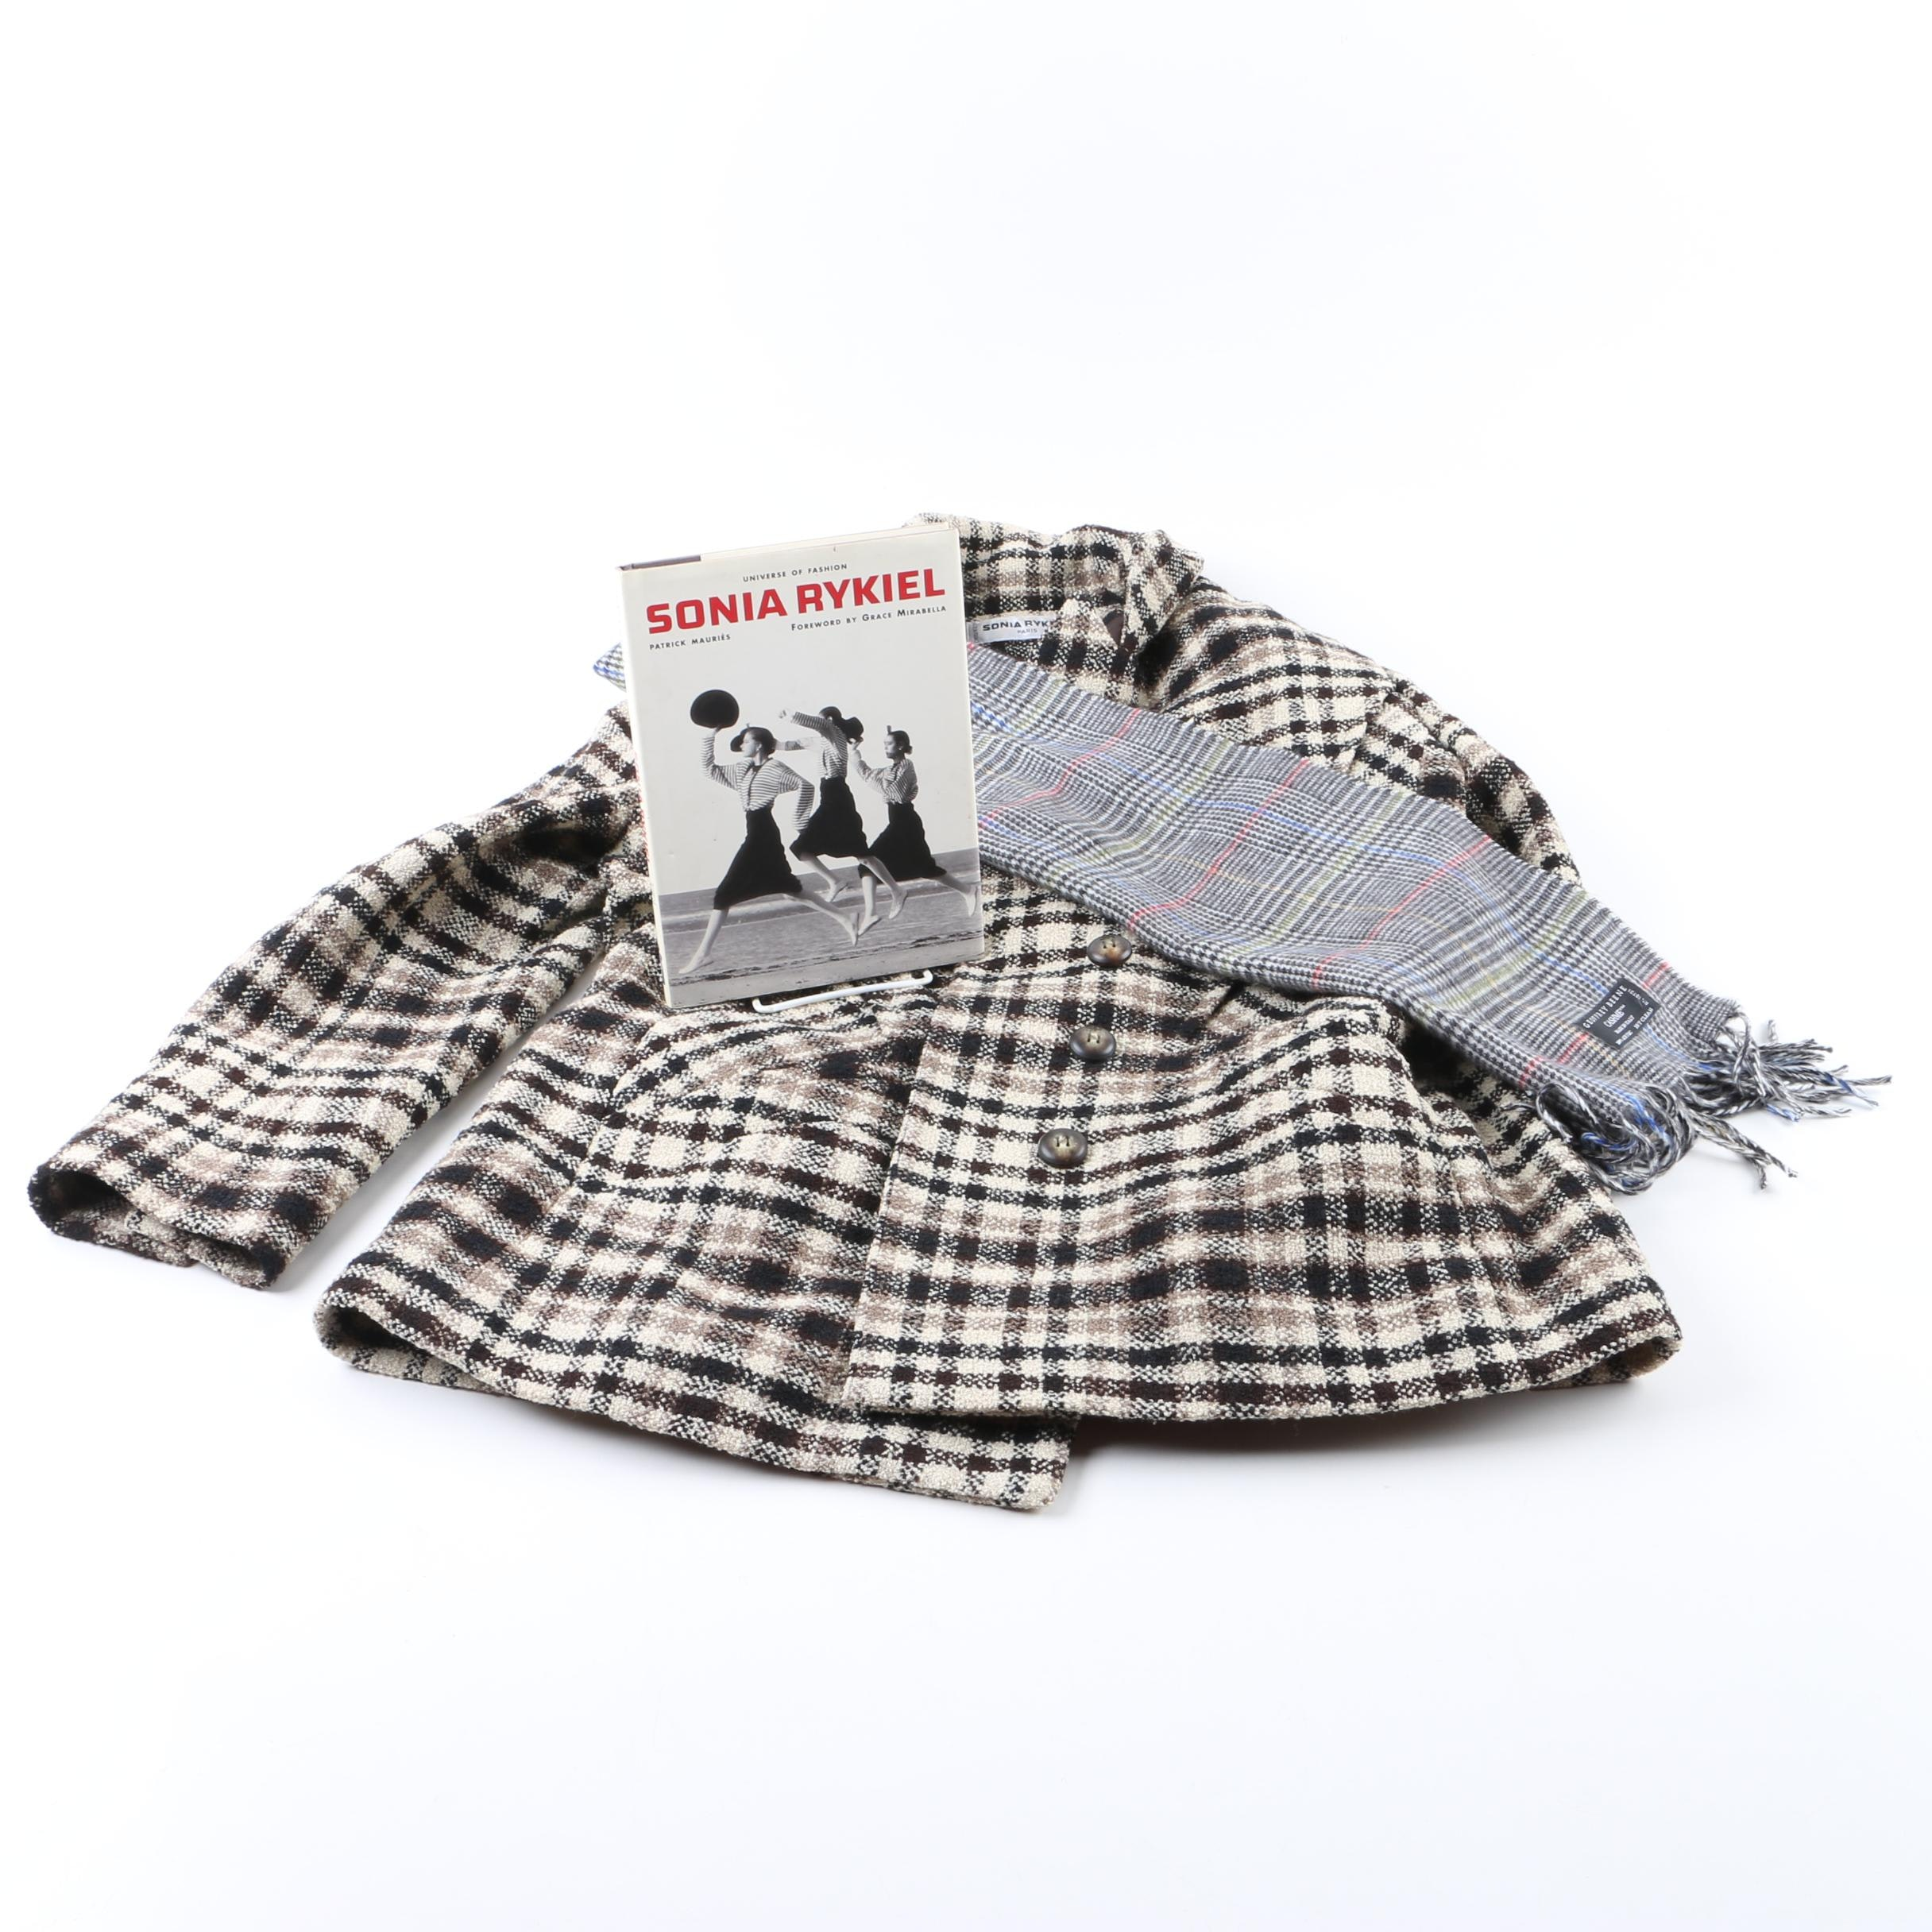 Sonia Rykiel of Paris Coat and Coffee Table Book with Geoffrey Beene Scarf